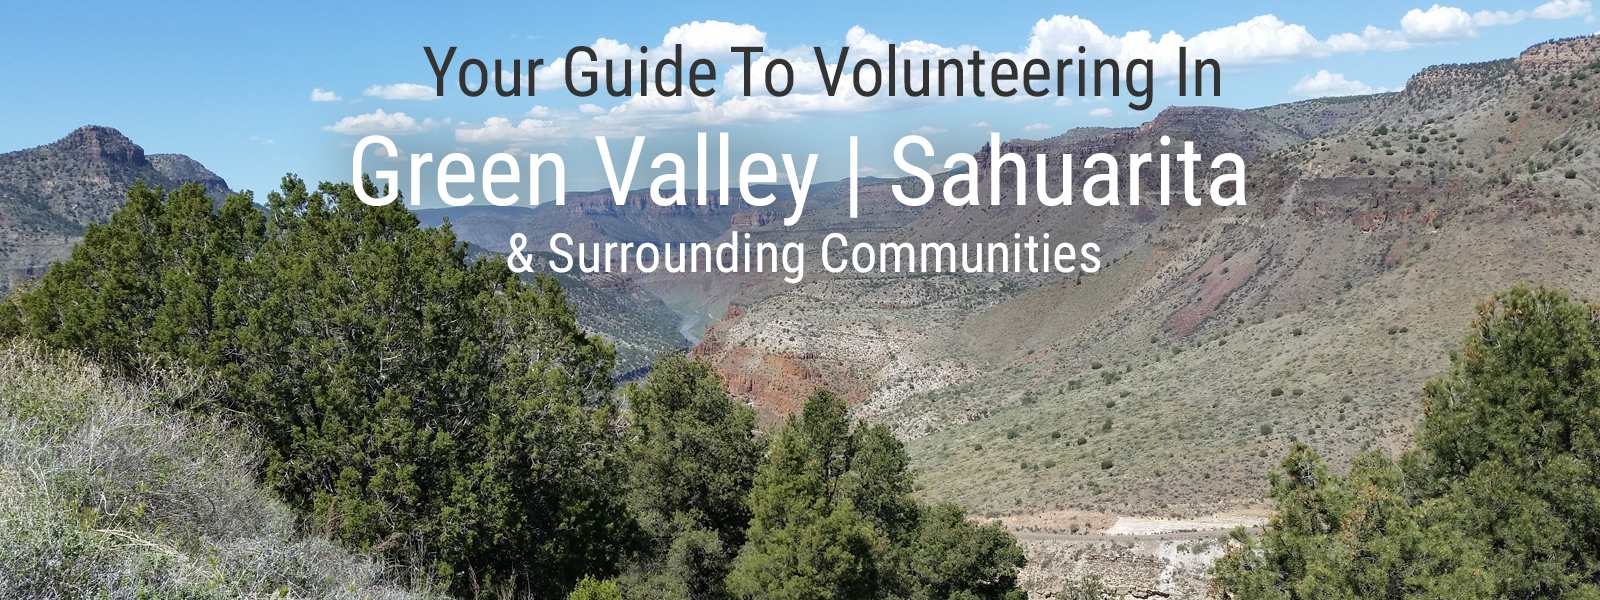 Green Valley | Sahuarita Volunteer Clearinghouse